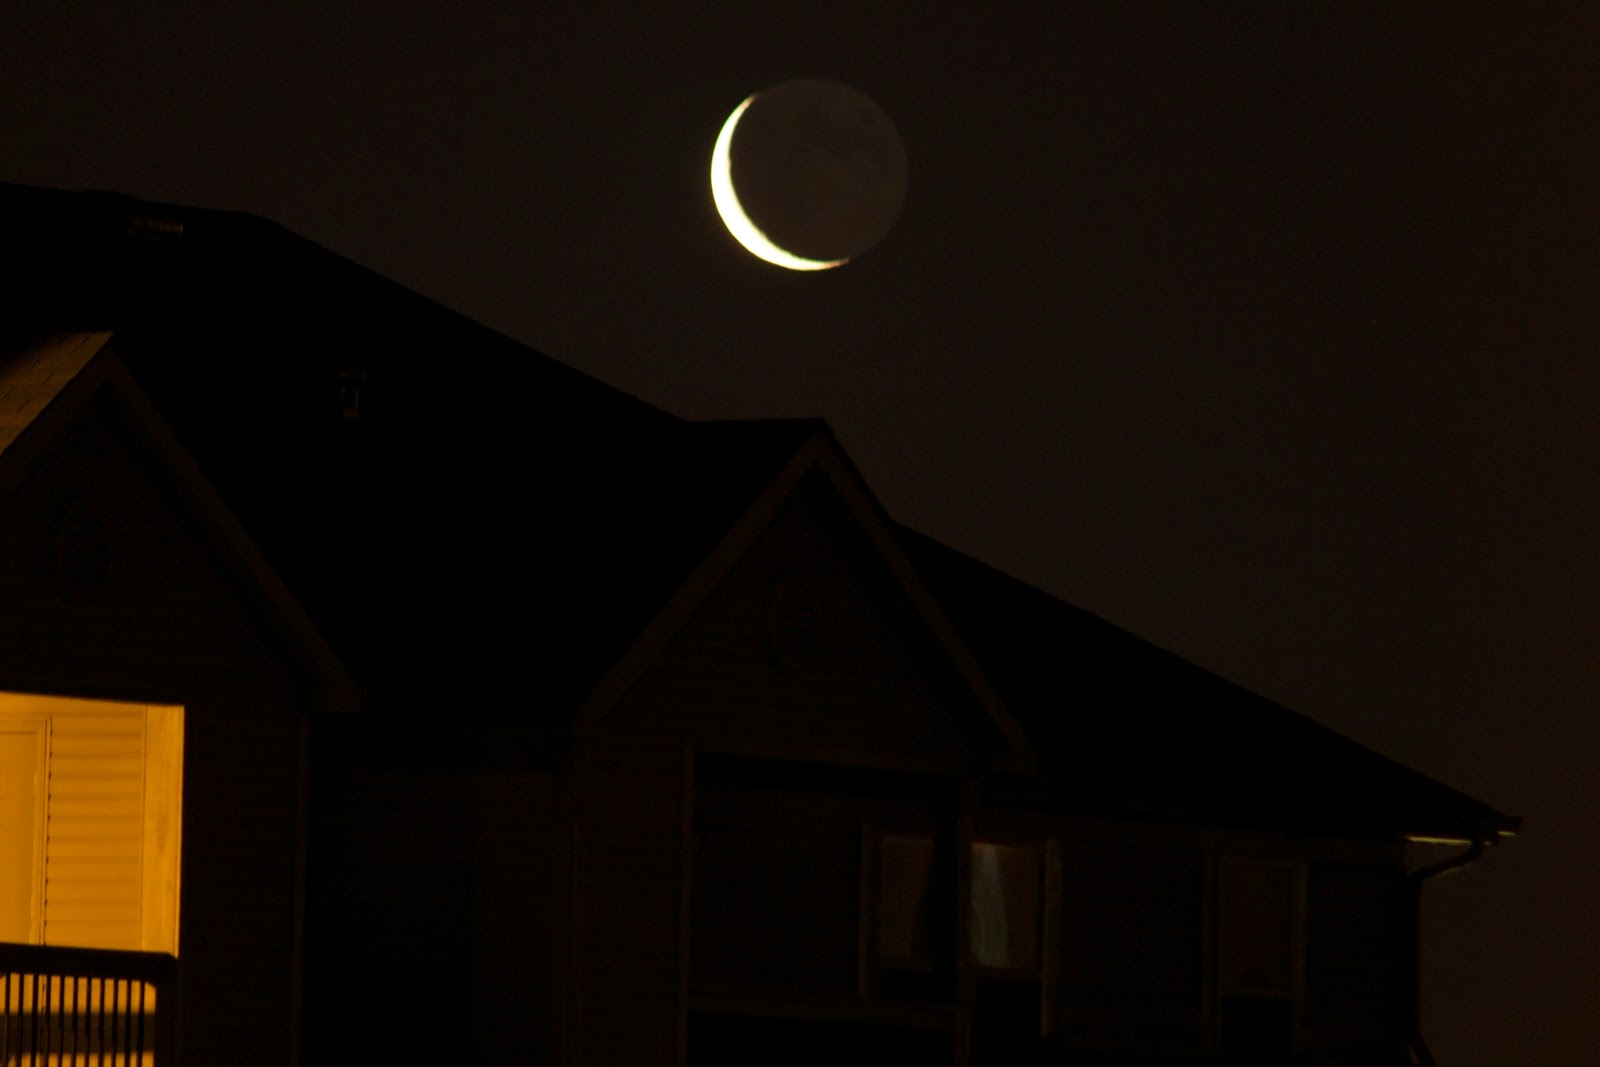 crescent moon over roof